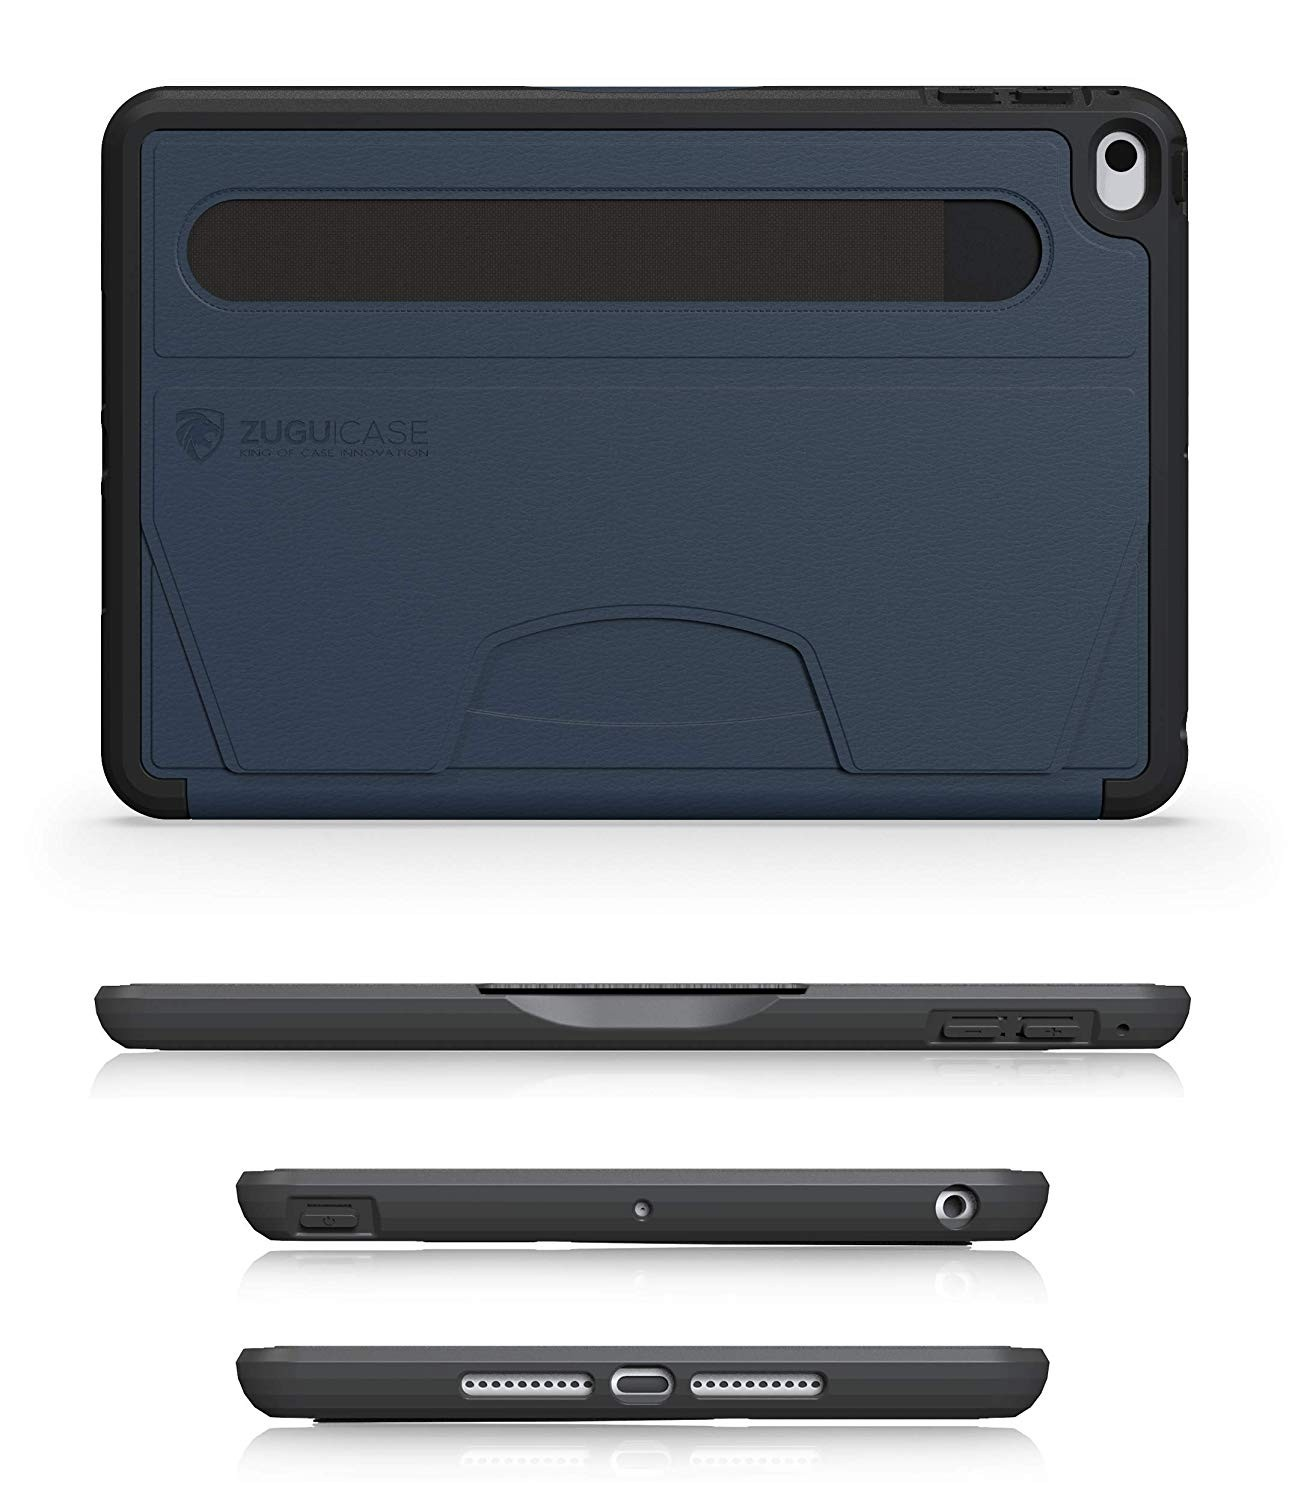 ZUGU CASE - iPad Mini 5 & 4 Muse Case - 5 Ft Drop Protection, Secure 7 Angle Magnetic Stand - Navy Blue, ZG-M-MIN5NB